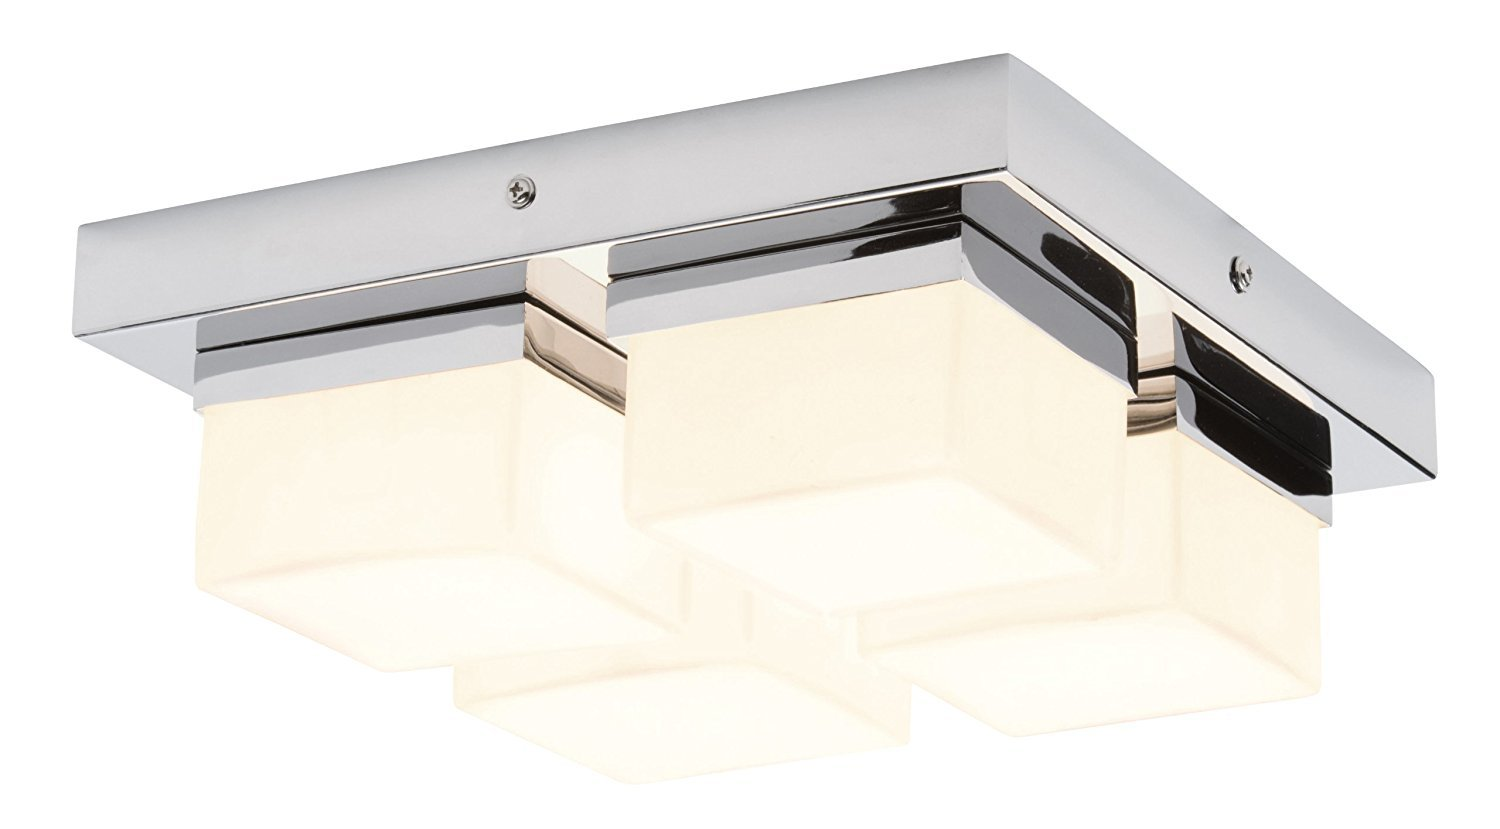 Marco Tielle 4 Light Square Bathroom Ceiling Light In Chrome Finish With White Frosted Glass Square Shades IP44 Zone 2 Rated